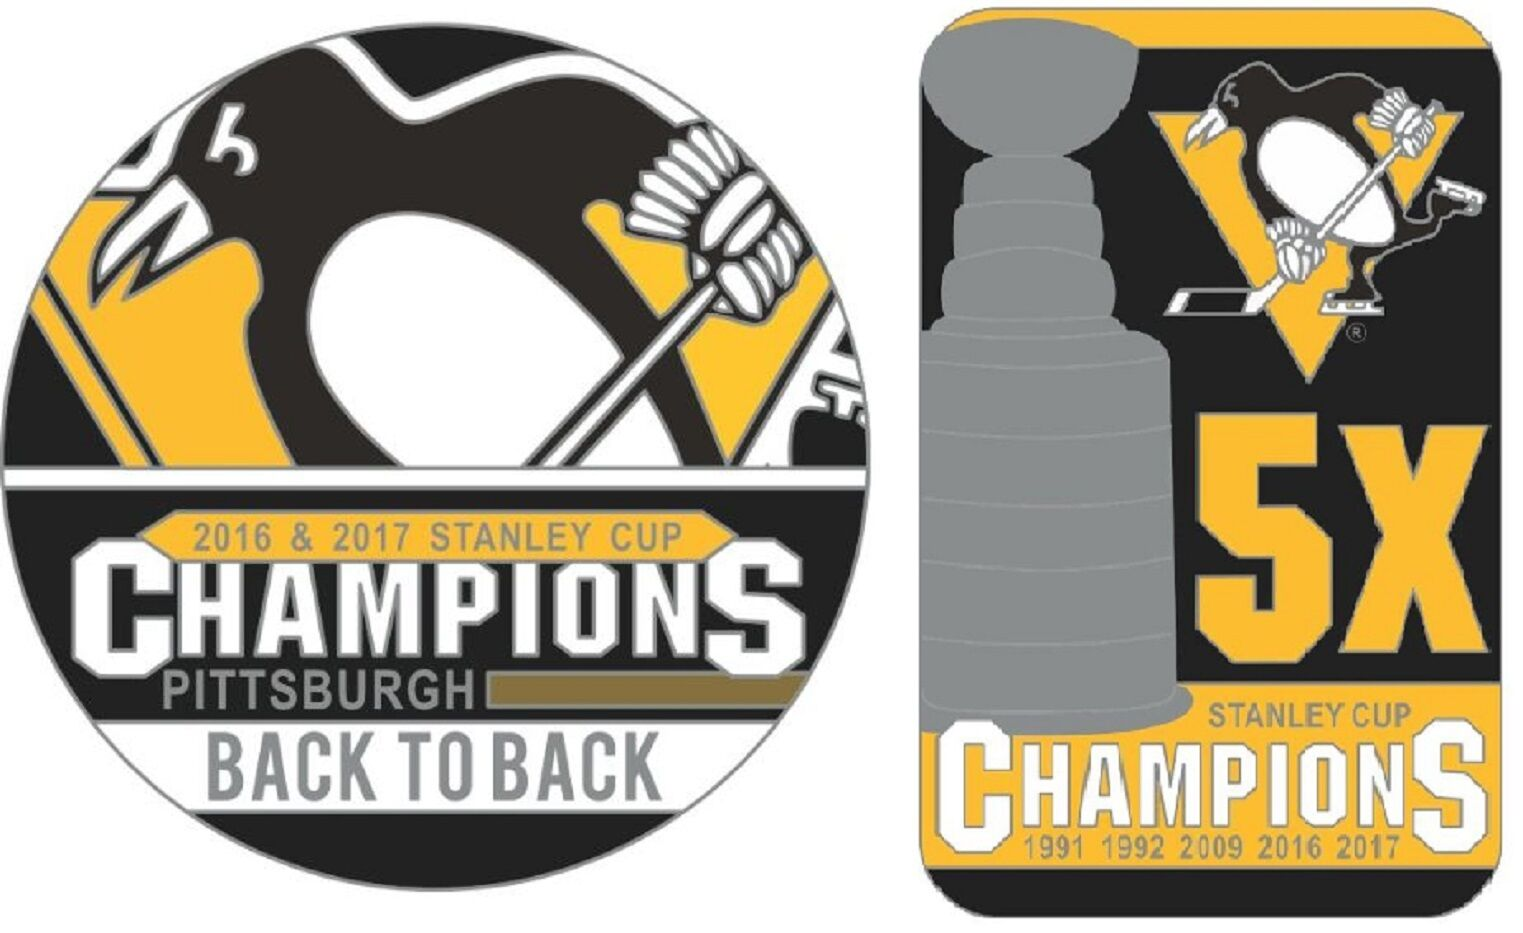 5879ca950e9 2017 PITTSBURGH PENGUINS STANLEY CUP FINAL 5X CHAMPIONS   BACK TO ...